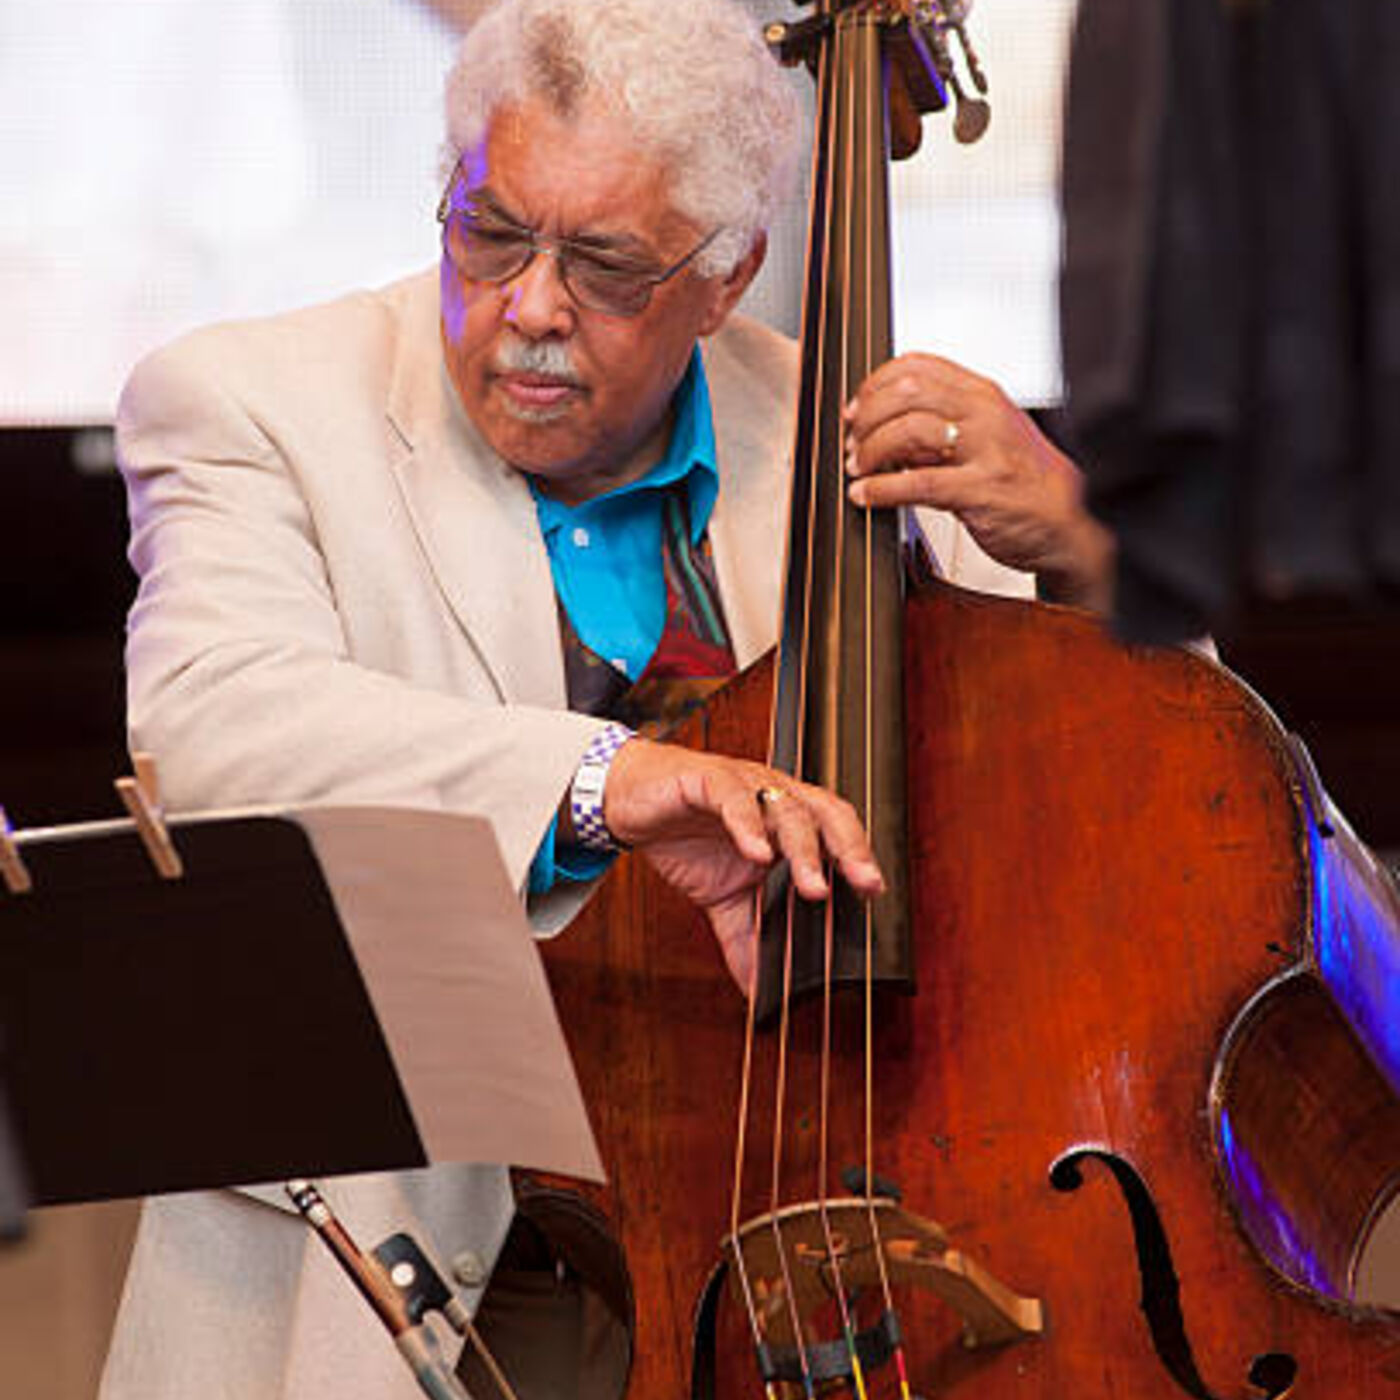 Episode 20 - A Conversation With Acclaimed Jazz Bassist, Educator, And Composer, Rufus Reid